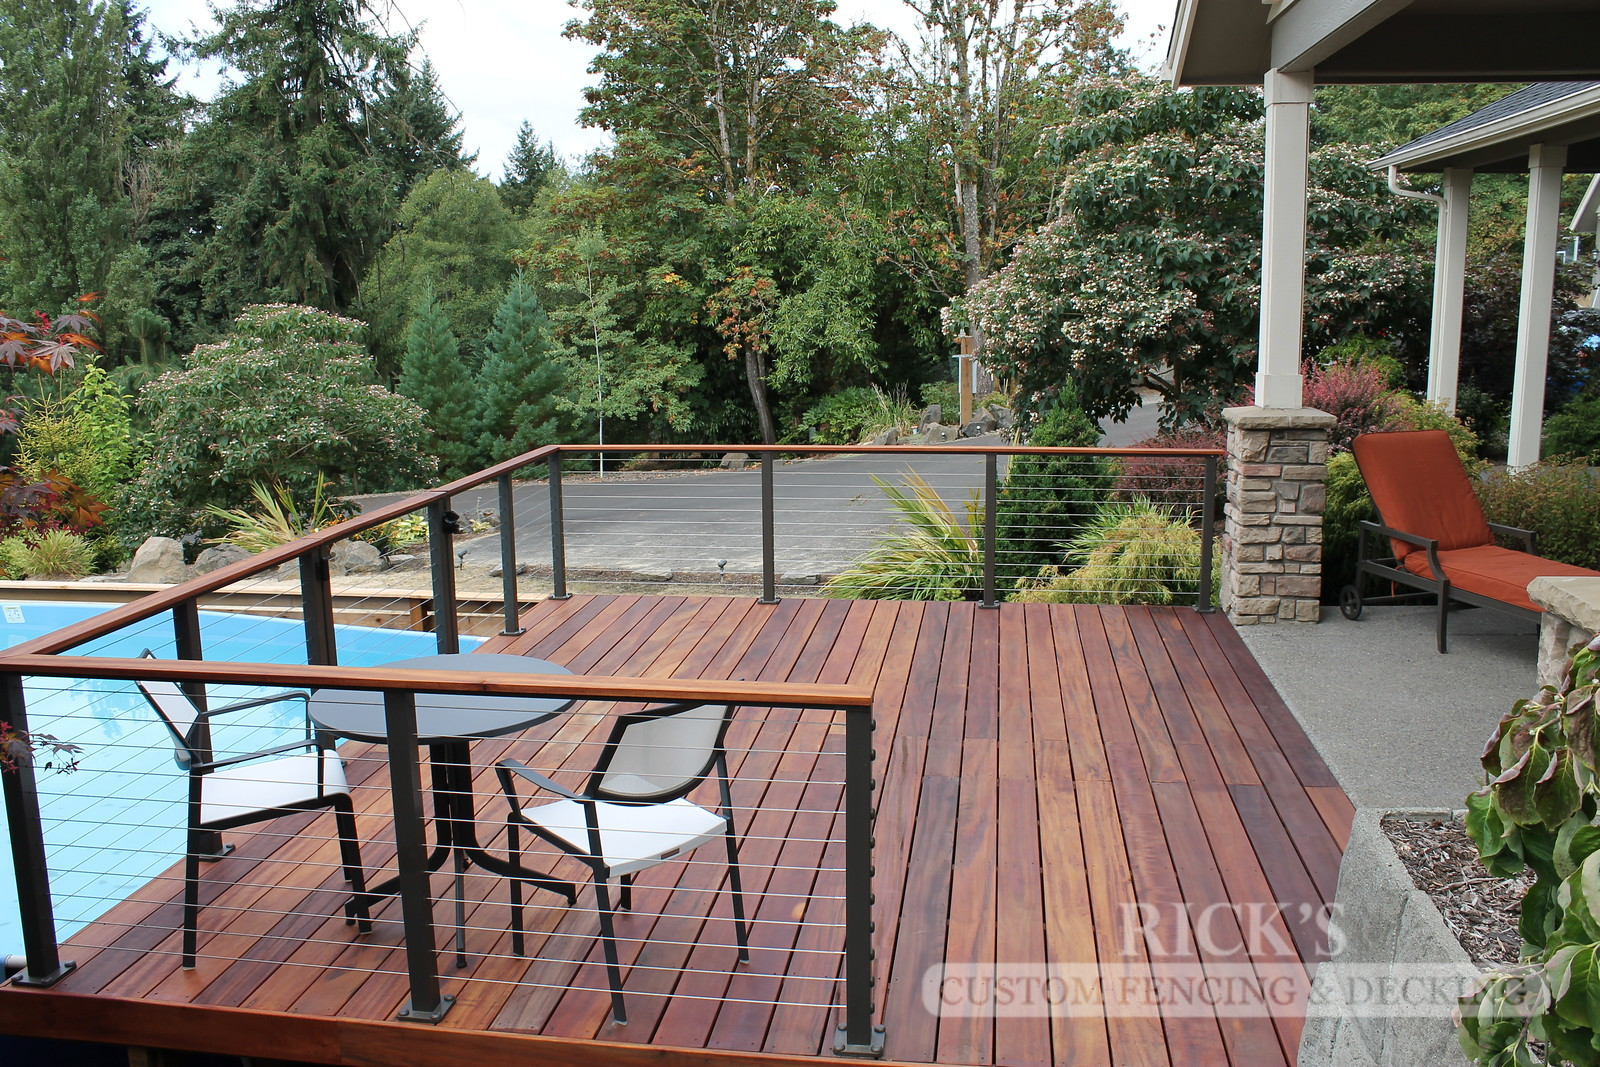 1111 - TigerWood Hardwood Decking